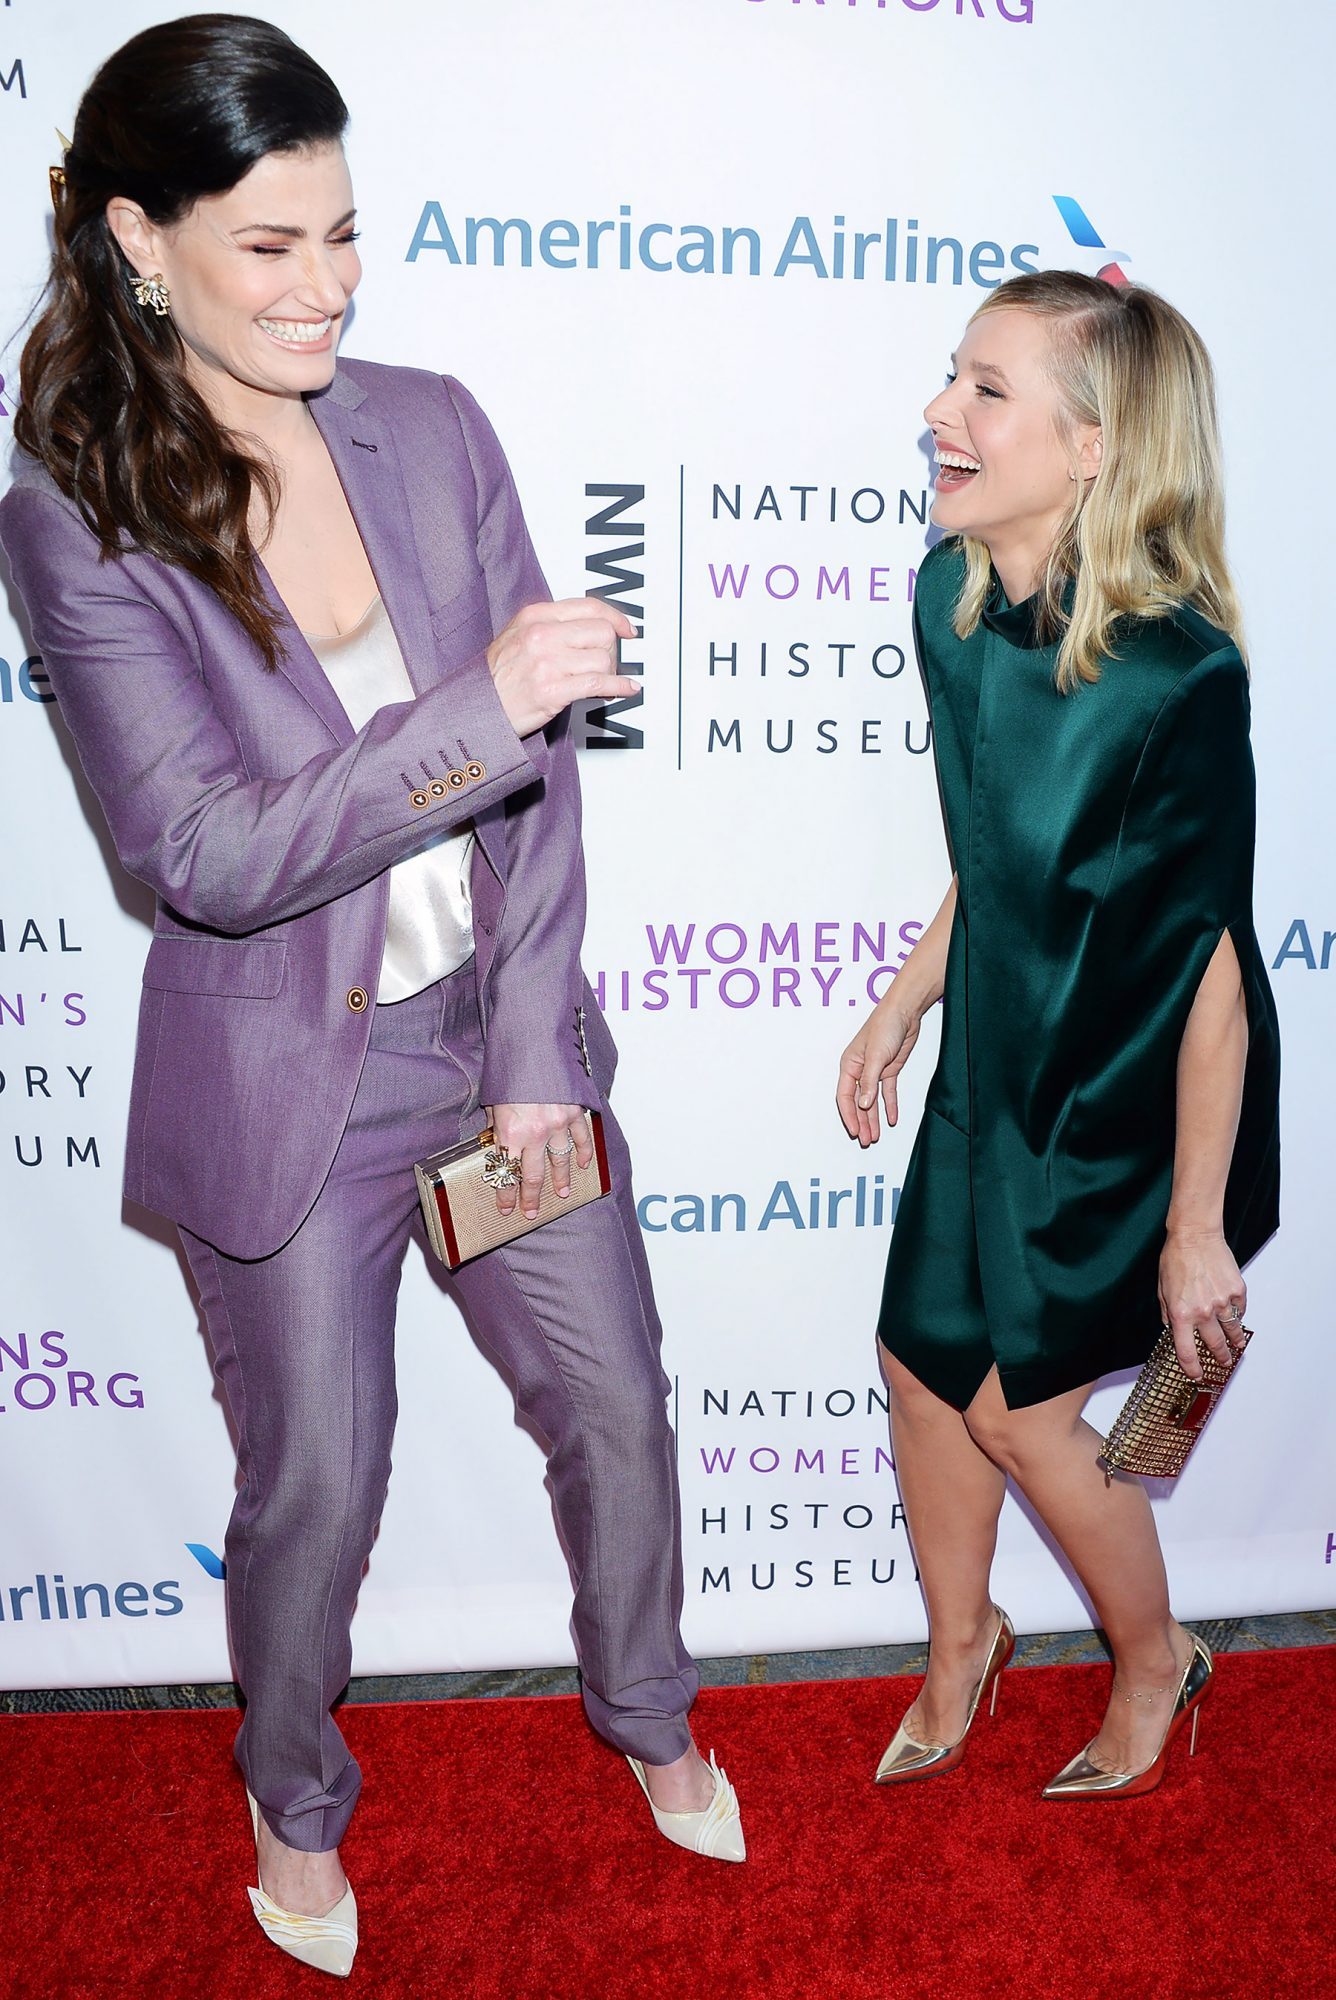 National Women's History Museum Women Making History Awards, Los Angeles, USA - 15 Sep 2018